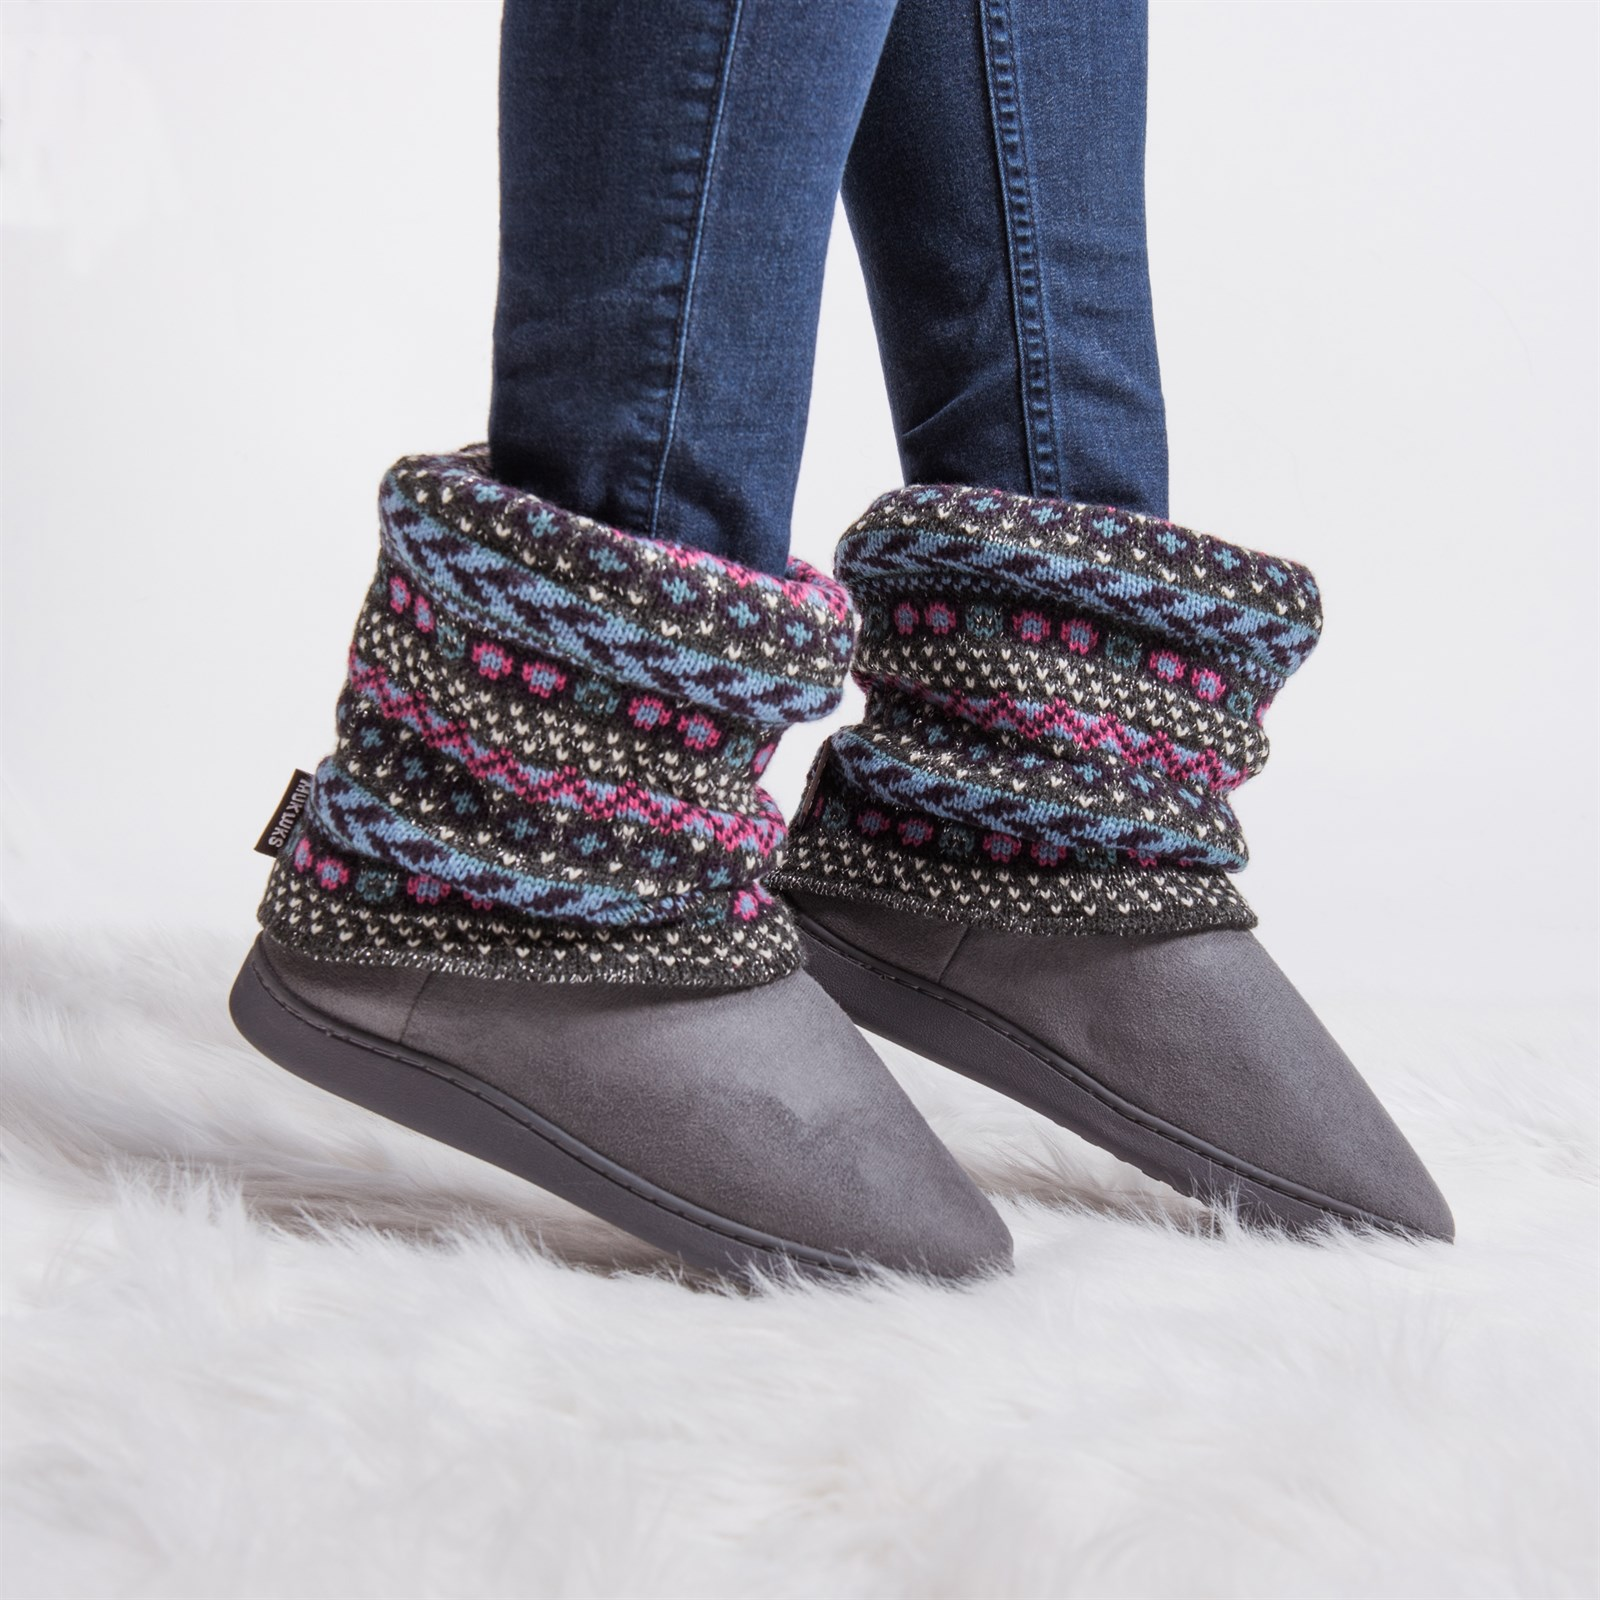 MUK LUKS Raquel Slippers + Free Shipping Only $16.99